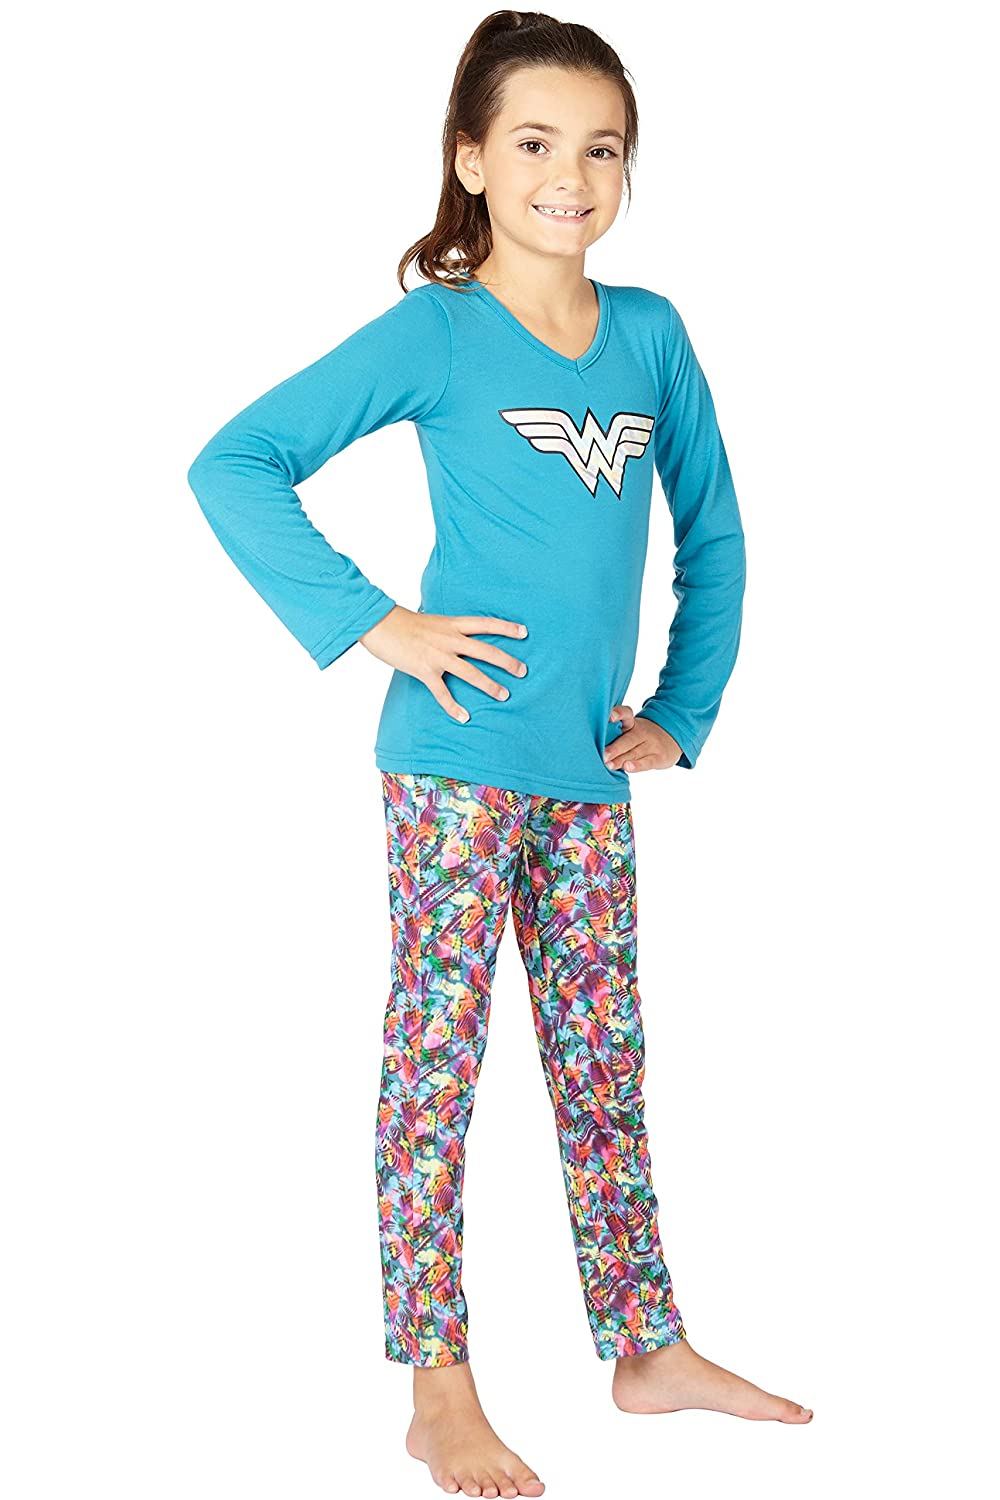 fc0b4f58de Amazon.com  Wonder Woman Big Girls  Wonder Woman Athletic Yoga Pajama Set